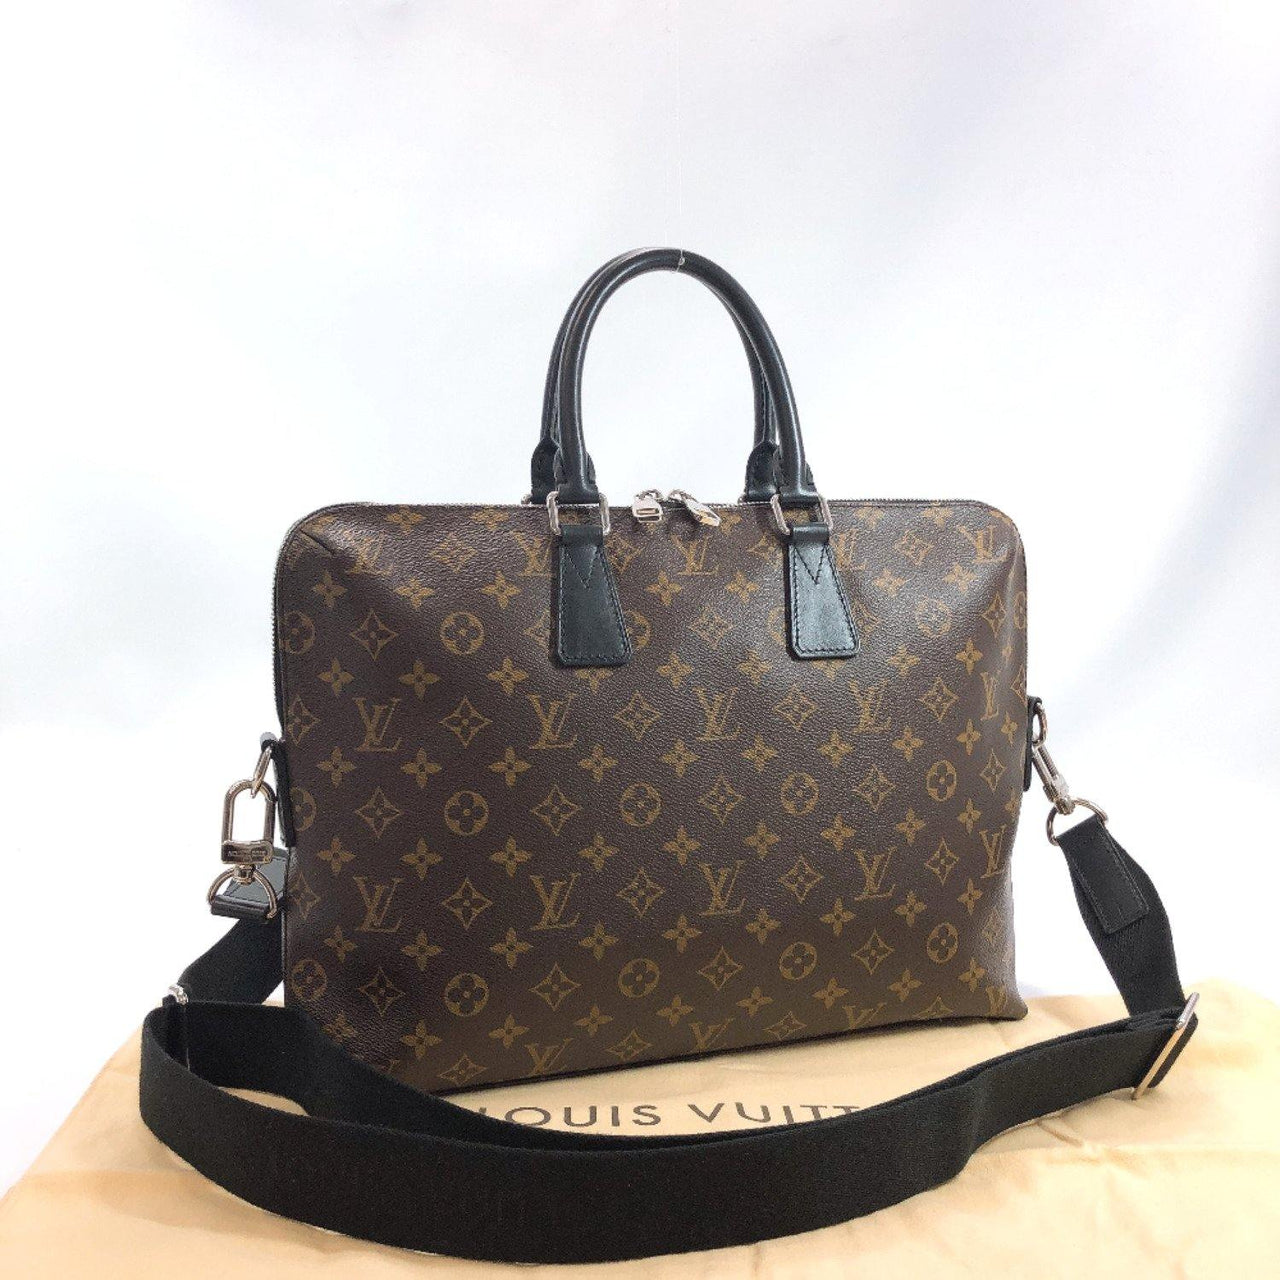 LOUIS VUITTON Business bag M40868 PDJ Monogram macacer Brown black mens Used